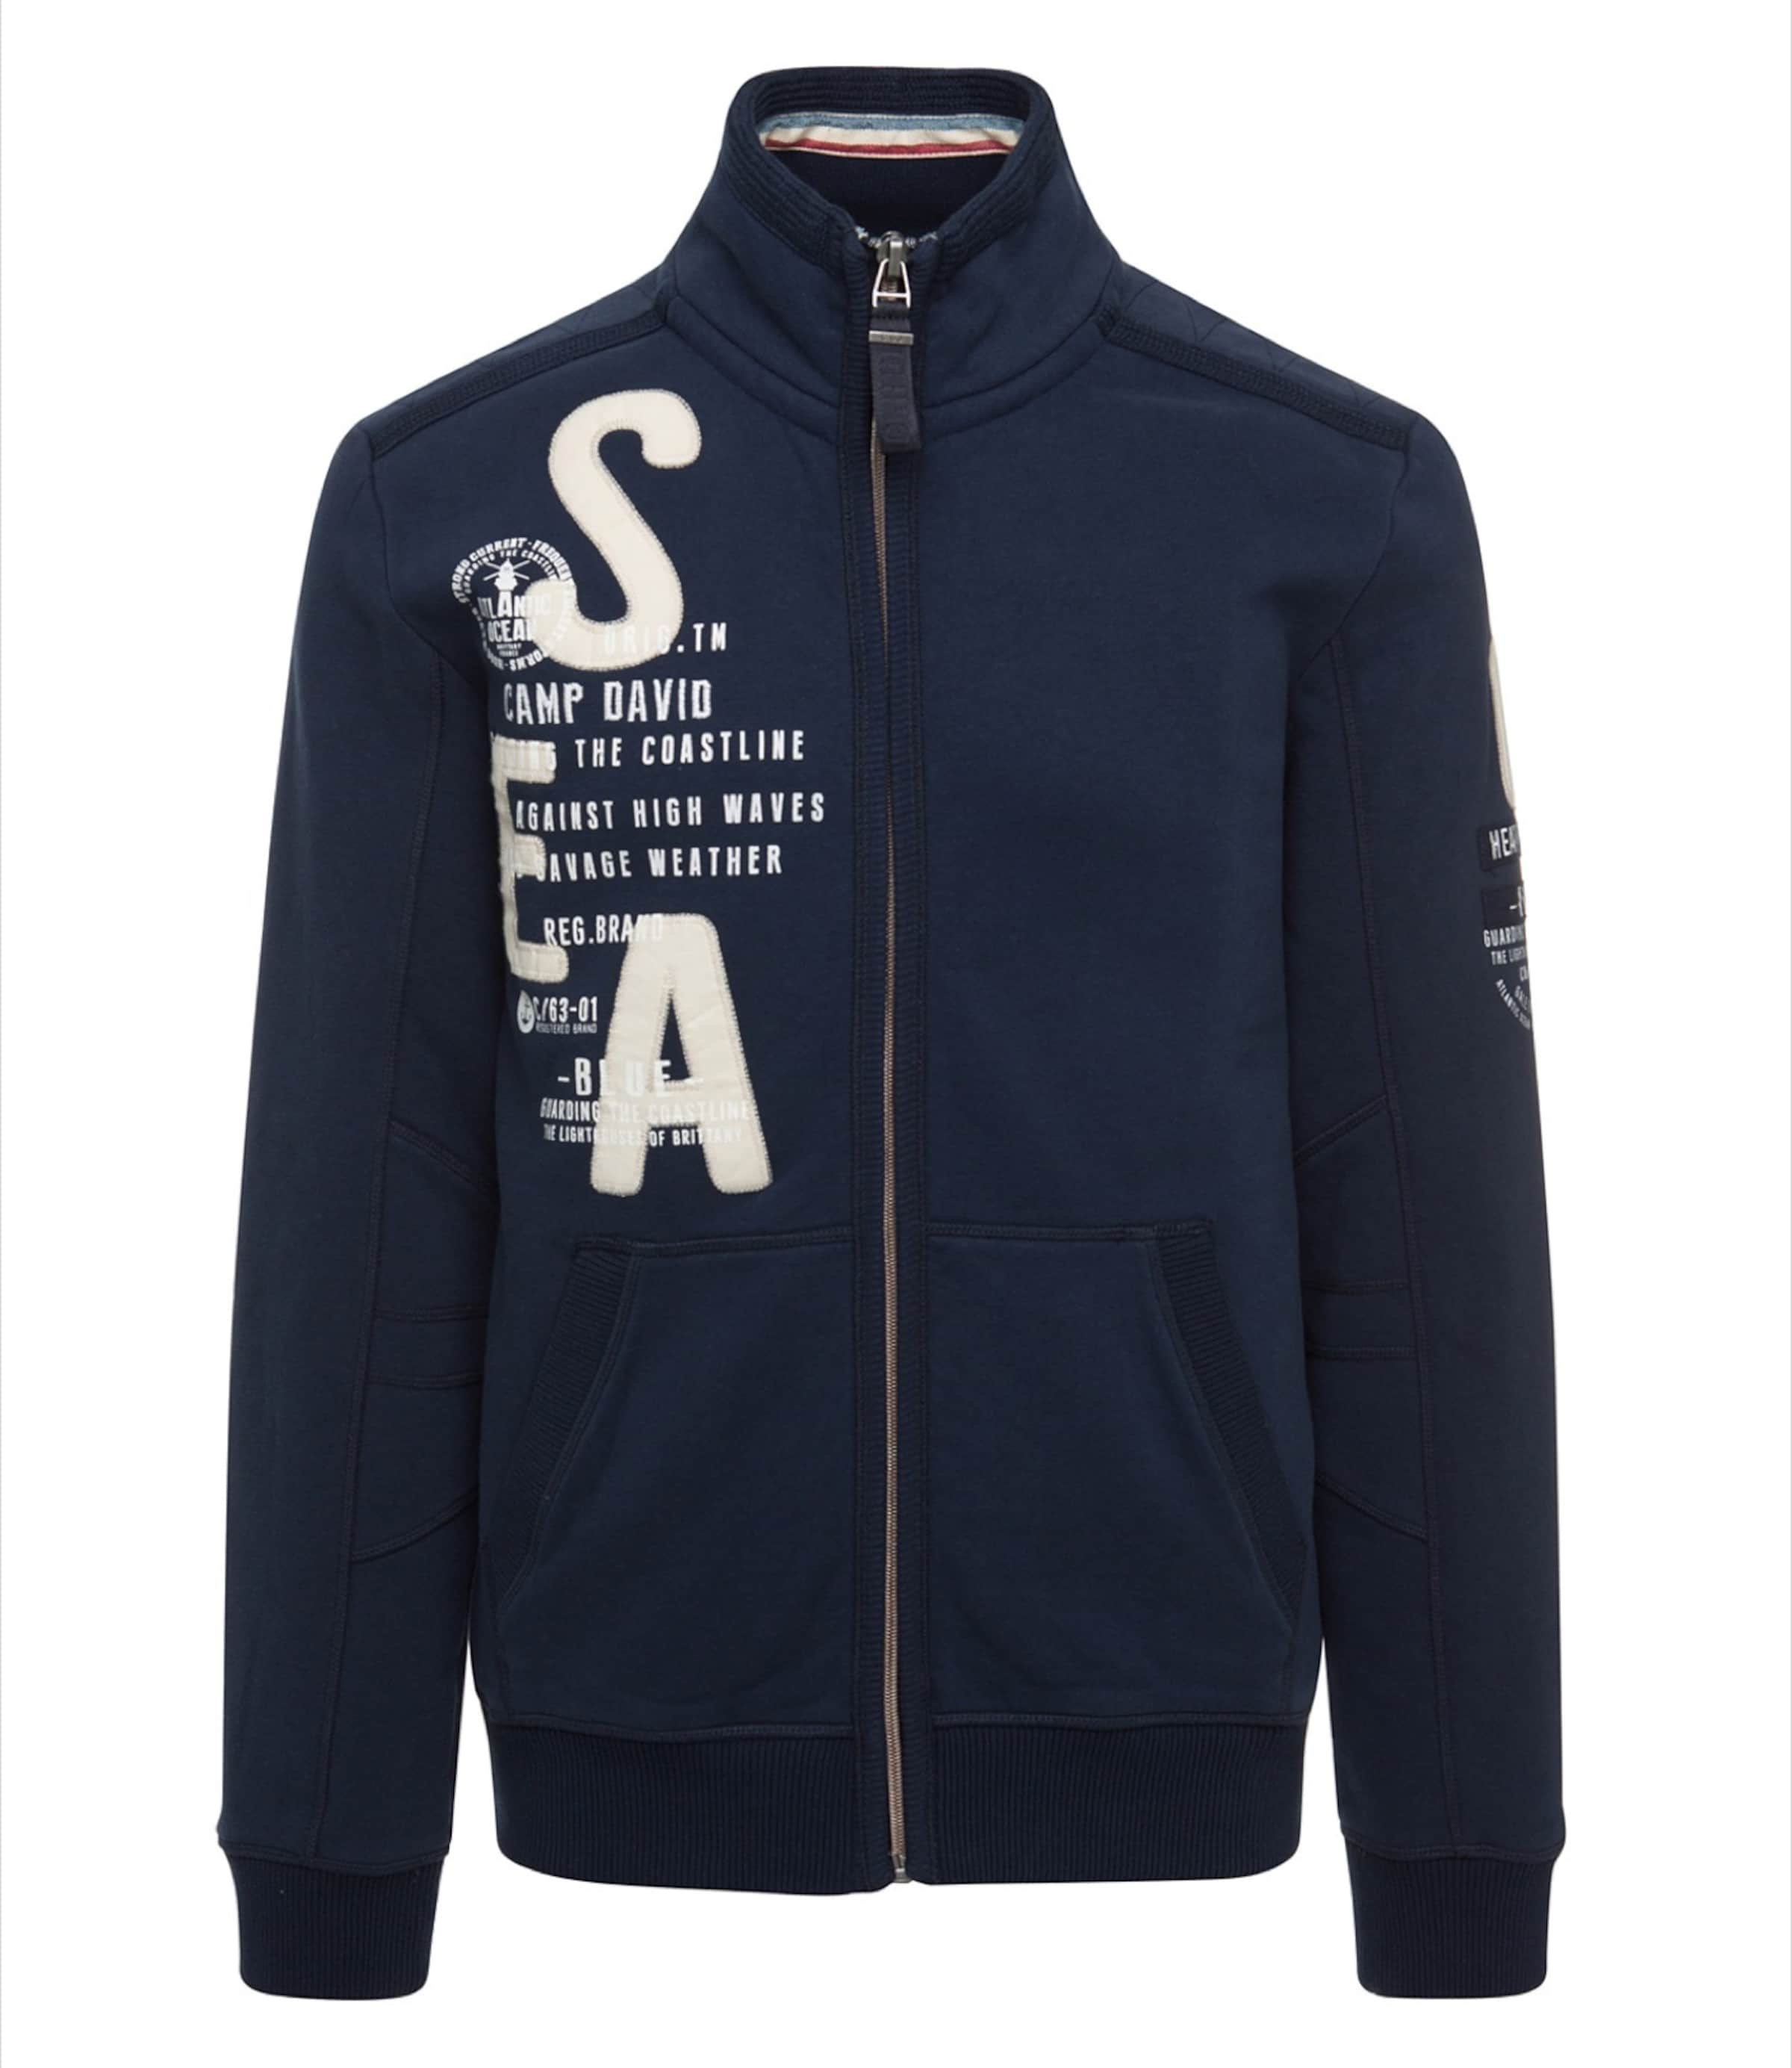 BeigeNavy In Weinrot David Camp Sweatjacke wXZTOkiulP